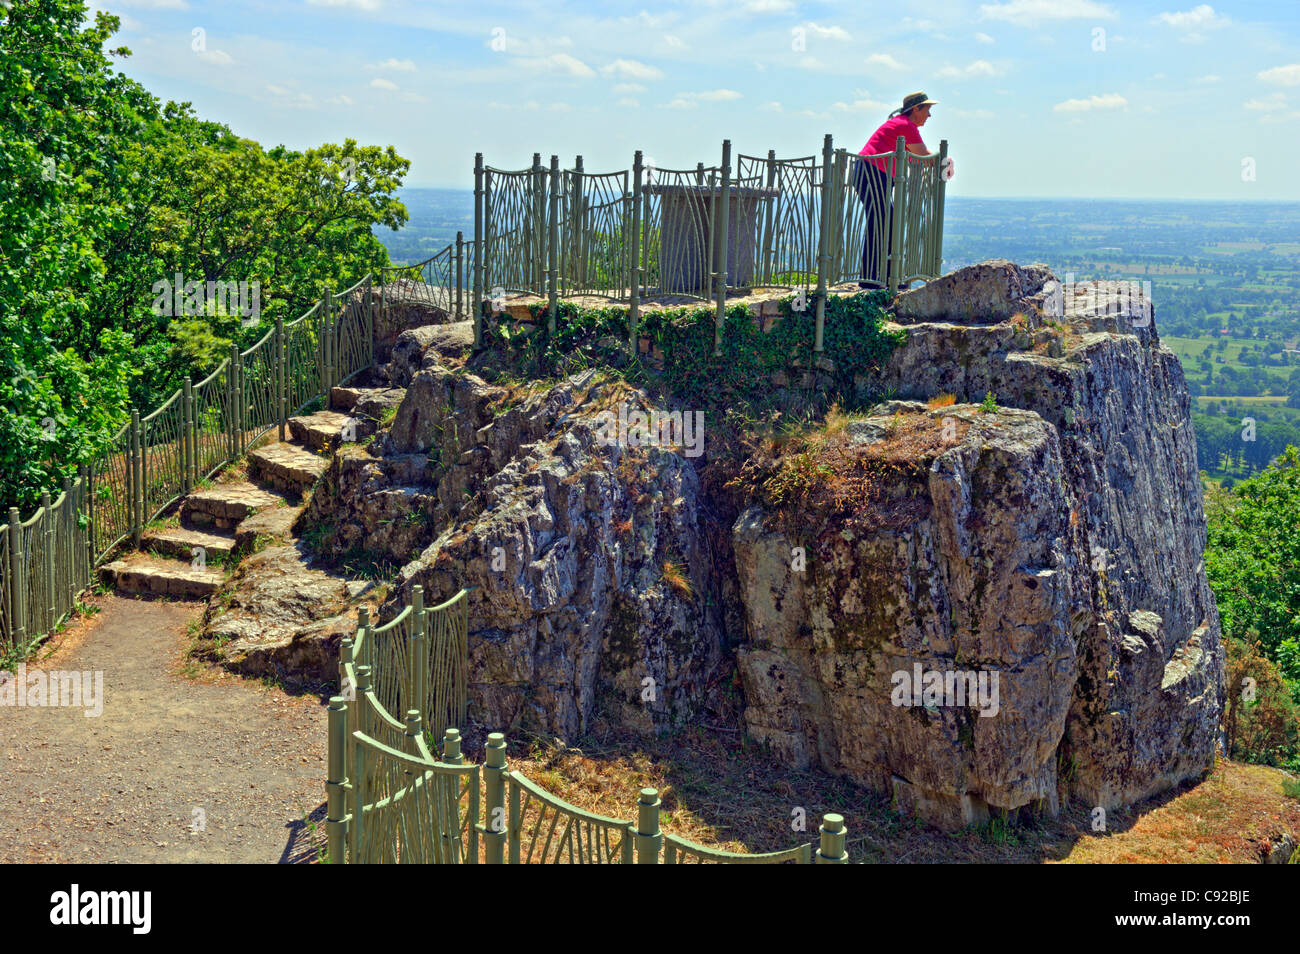 Viewpoint at La Petite Chapelle, Mortain in the Manche (50) departement of France - Stock Image